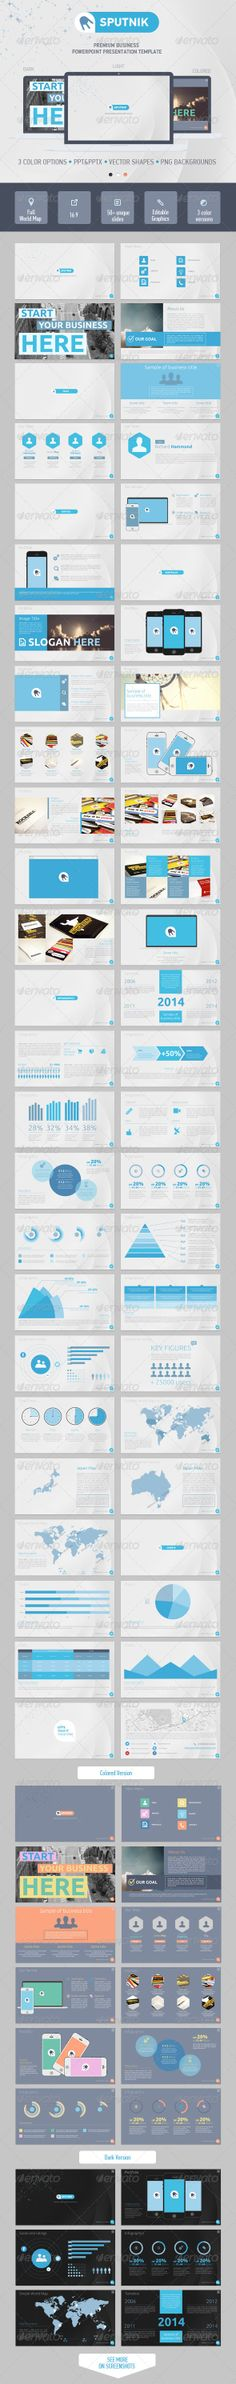 Sputnik PowerPoint Presentation Template (Powerpoint Templates) #Powerpoint #Powerpoint_Template #Presentation